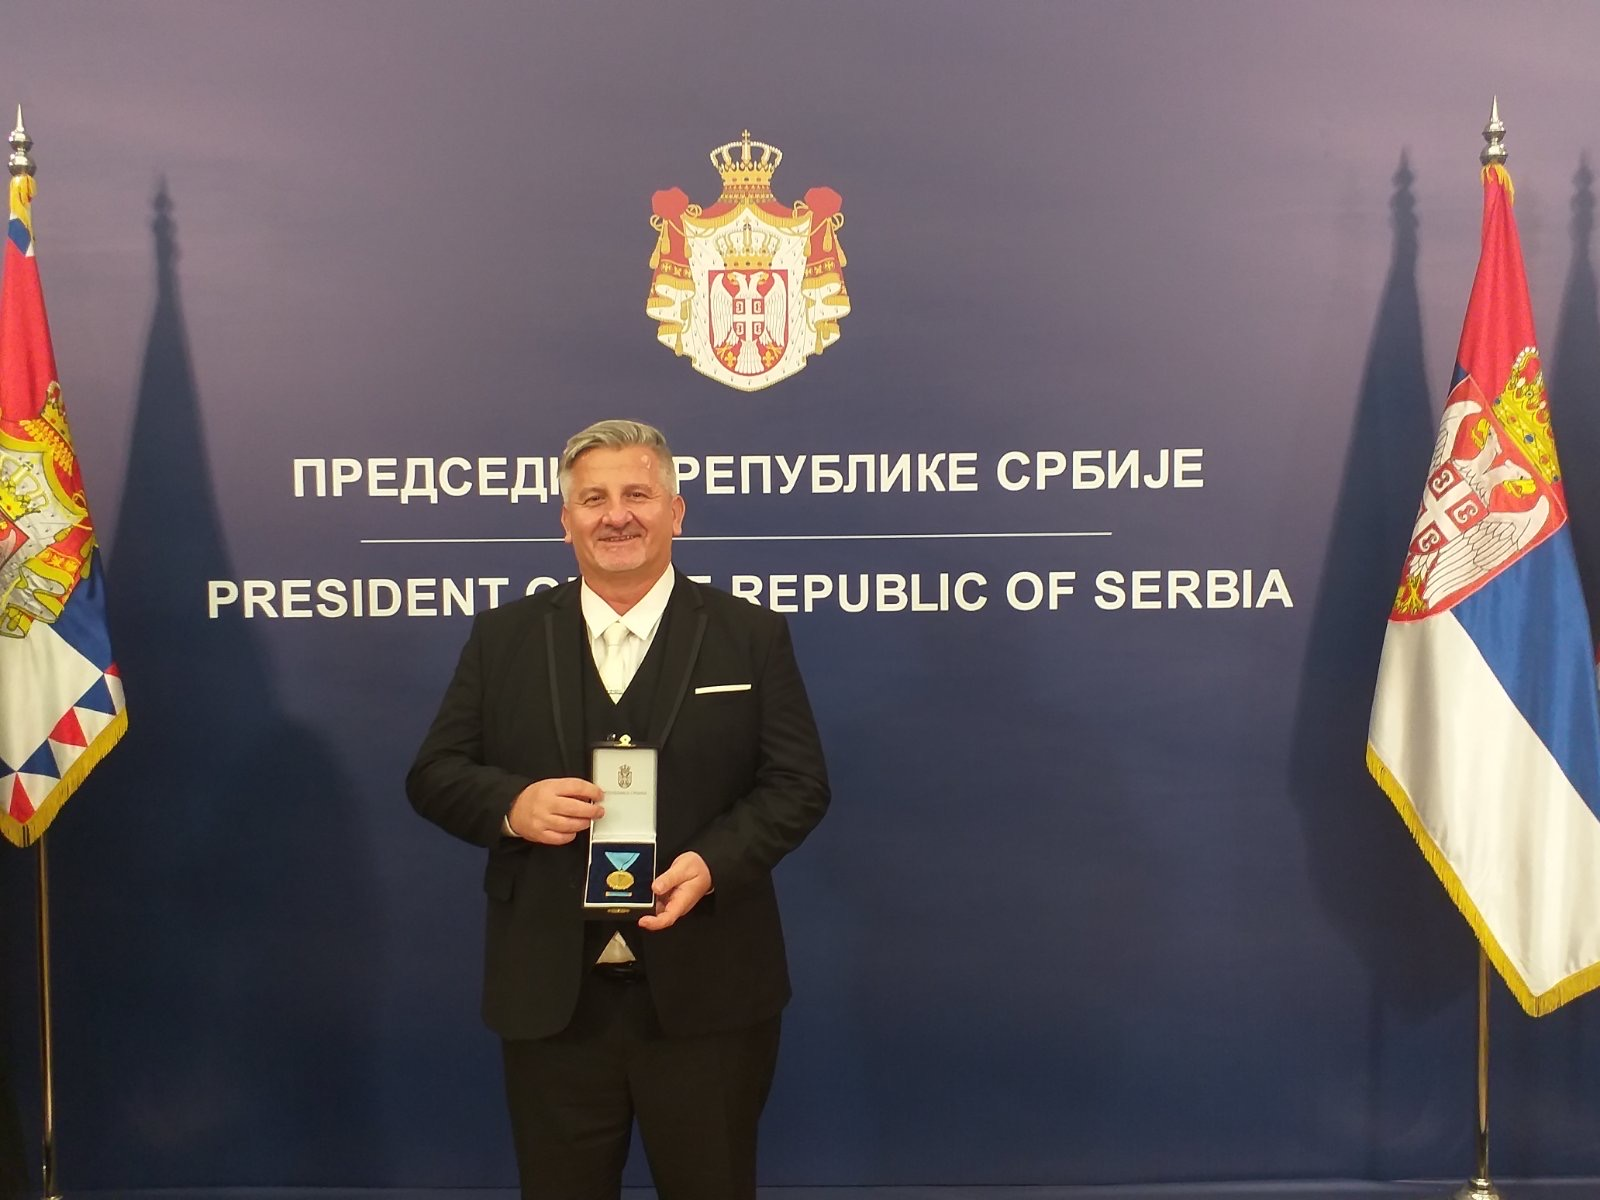 The President of the Republic of Serbia Awarded the Director of the Archives of Vojvodina Dr. Nebojša Kuzmanović with a Gold Medal for His Achievements